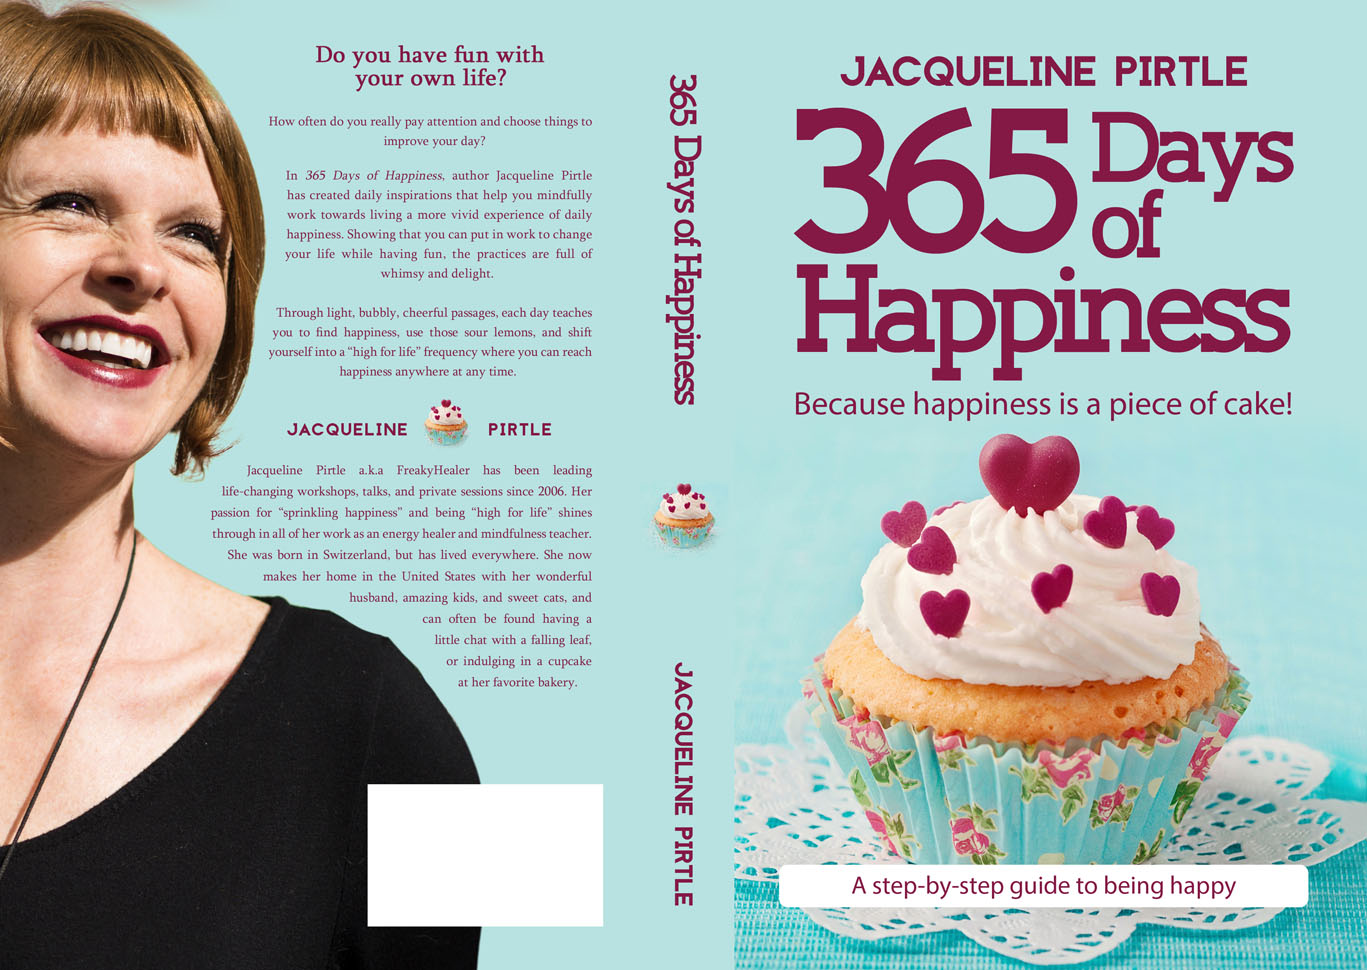 365 days of happiness - 15.03 - version 2 updated_1.jpg